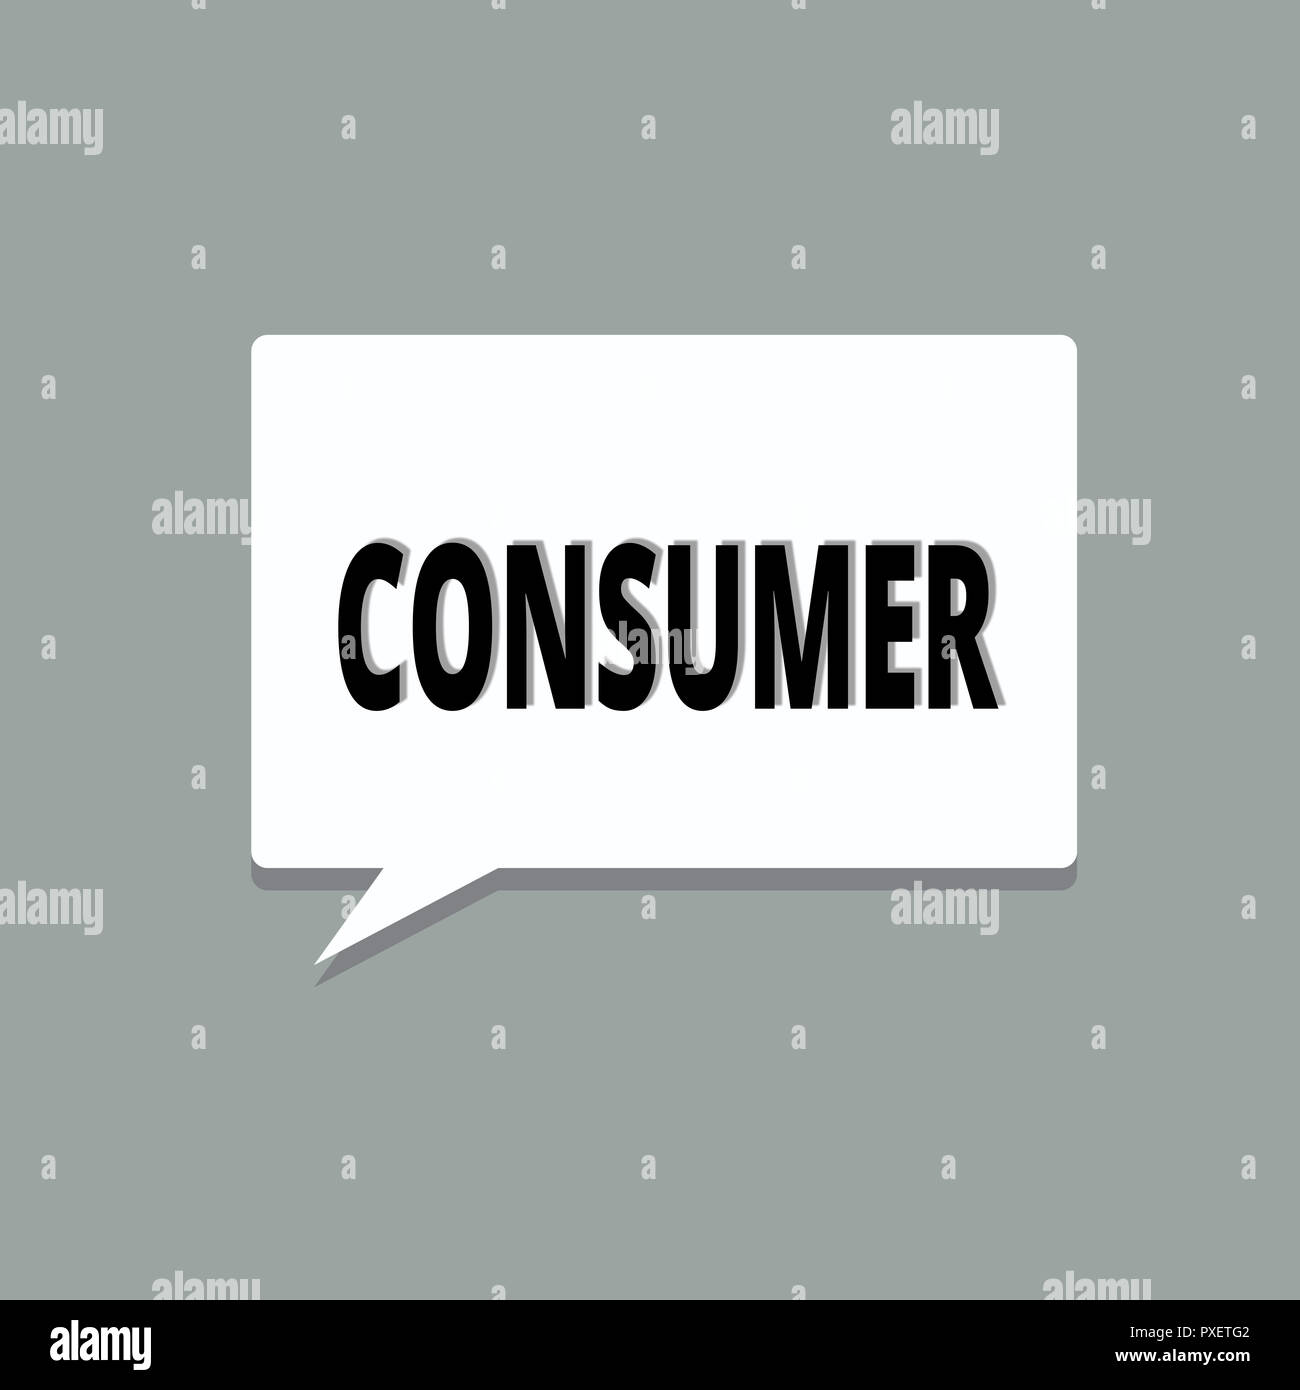 Consumer Usage Stock Photos Amp Consumer Usage Stock Images